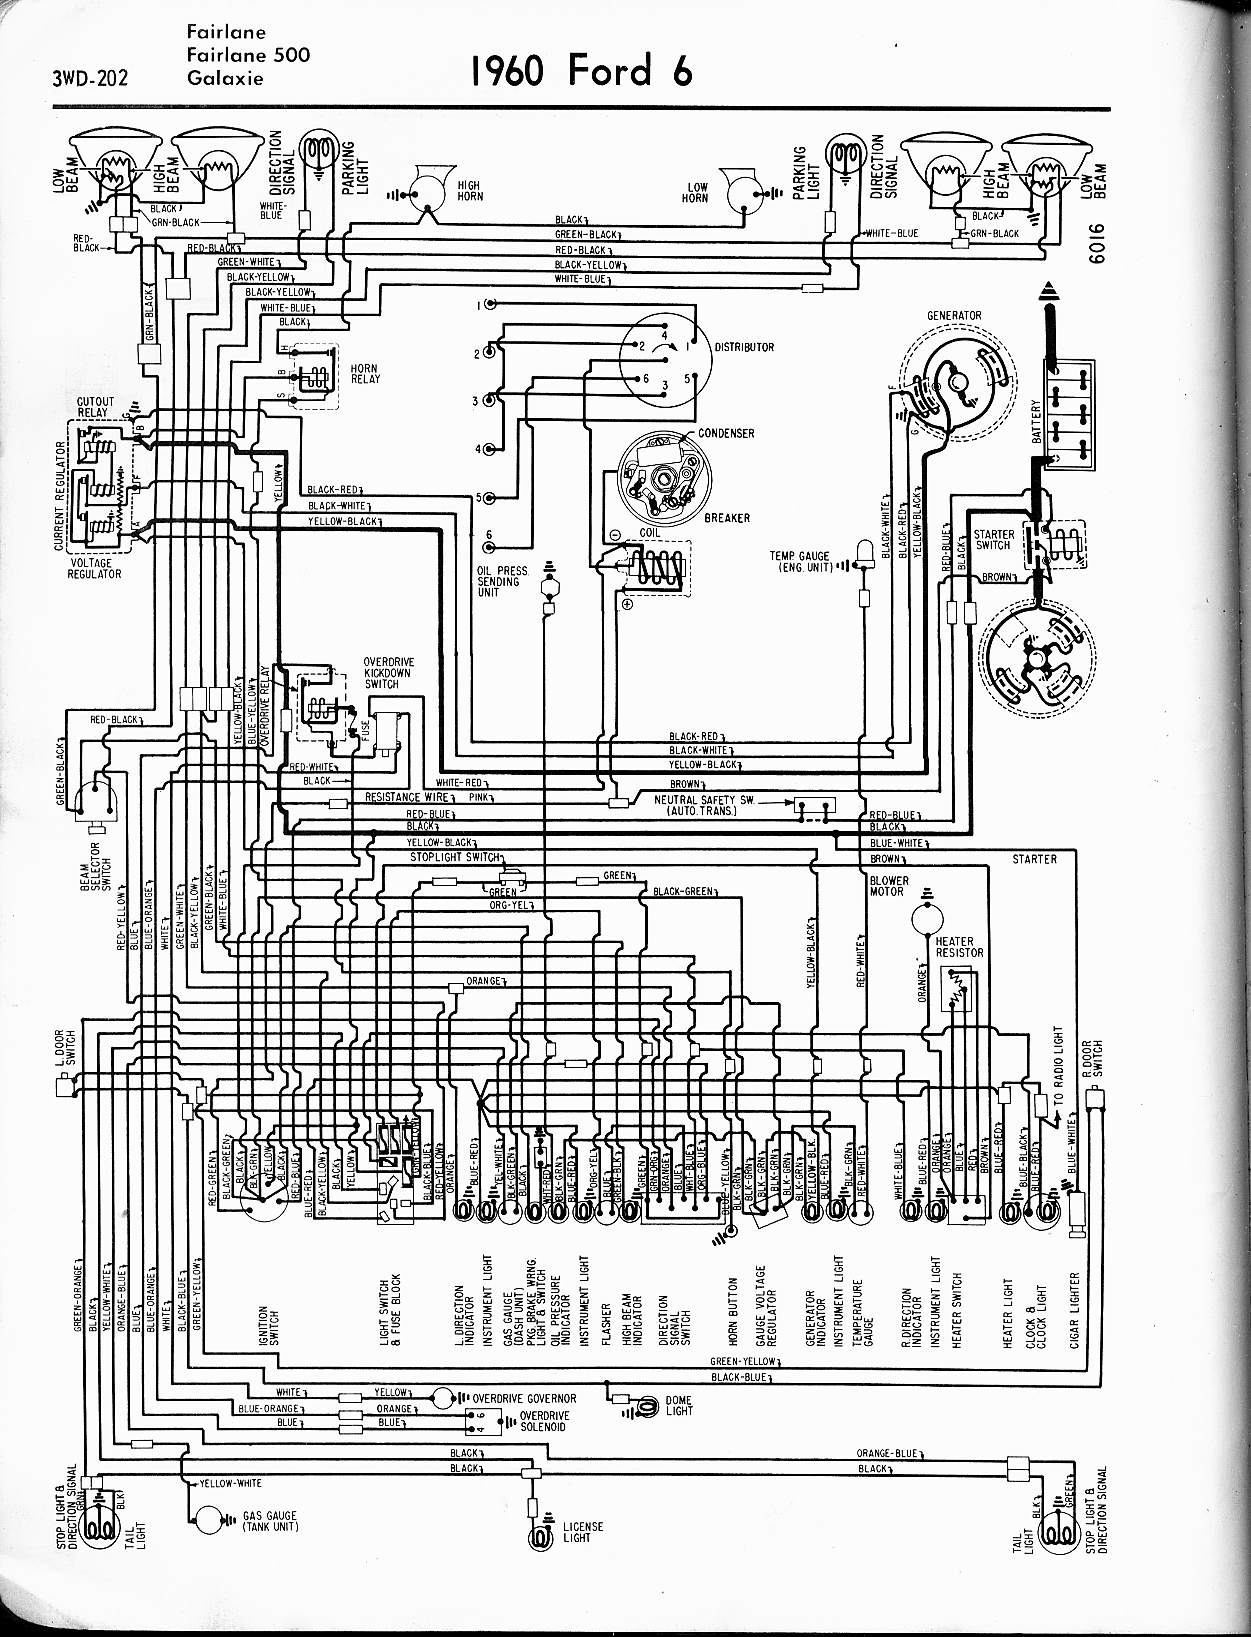 Ford 4000 Light Switch Diagram Another Blog About Wiring To Obd2 Civicobd1 1960 F100 U2022 Rh Ok2 Infoservice Ru